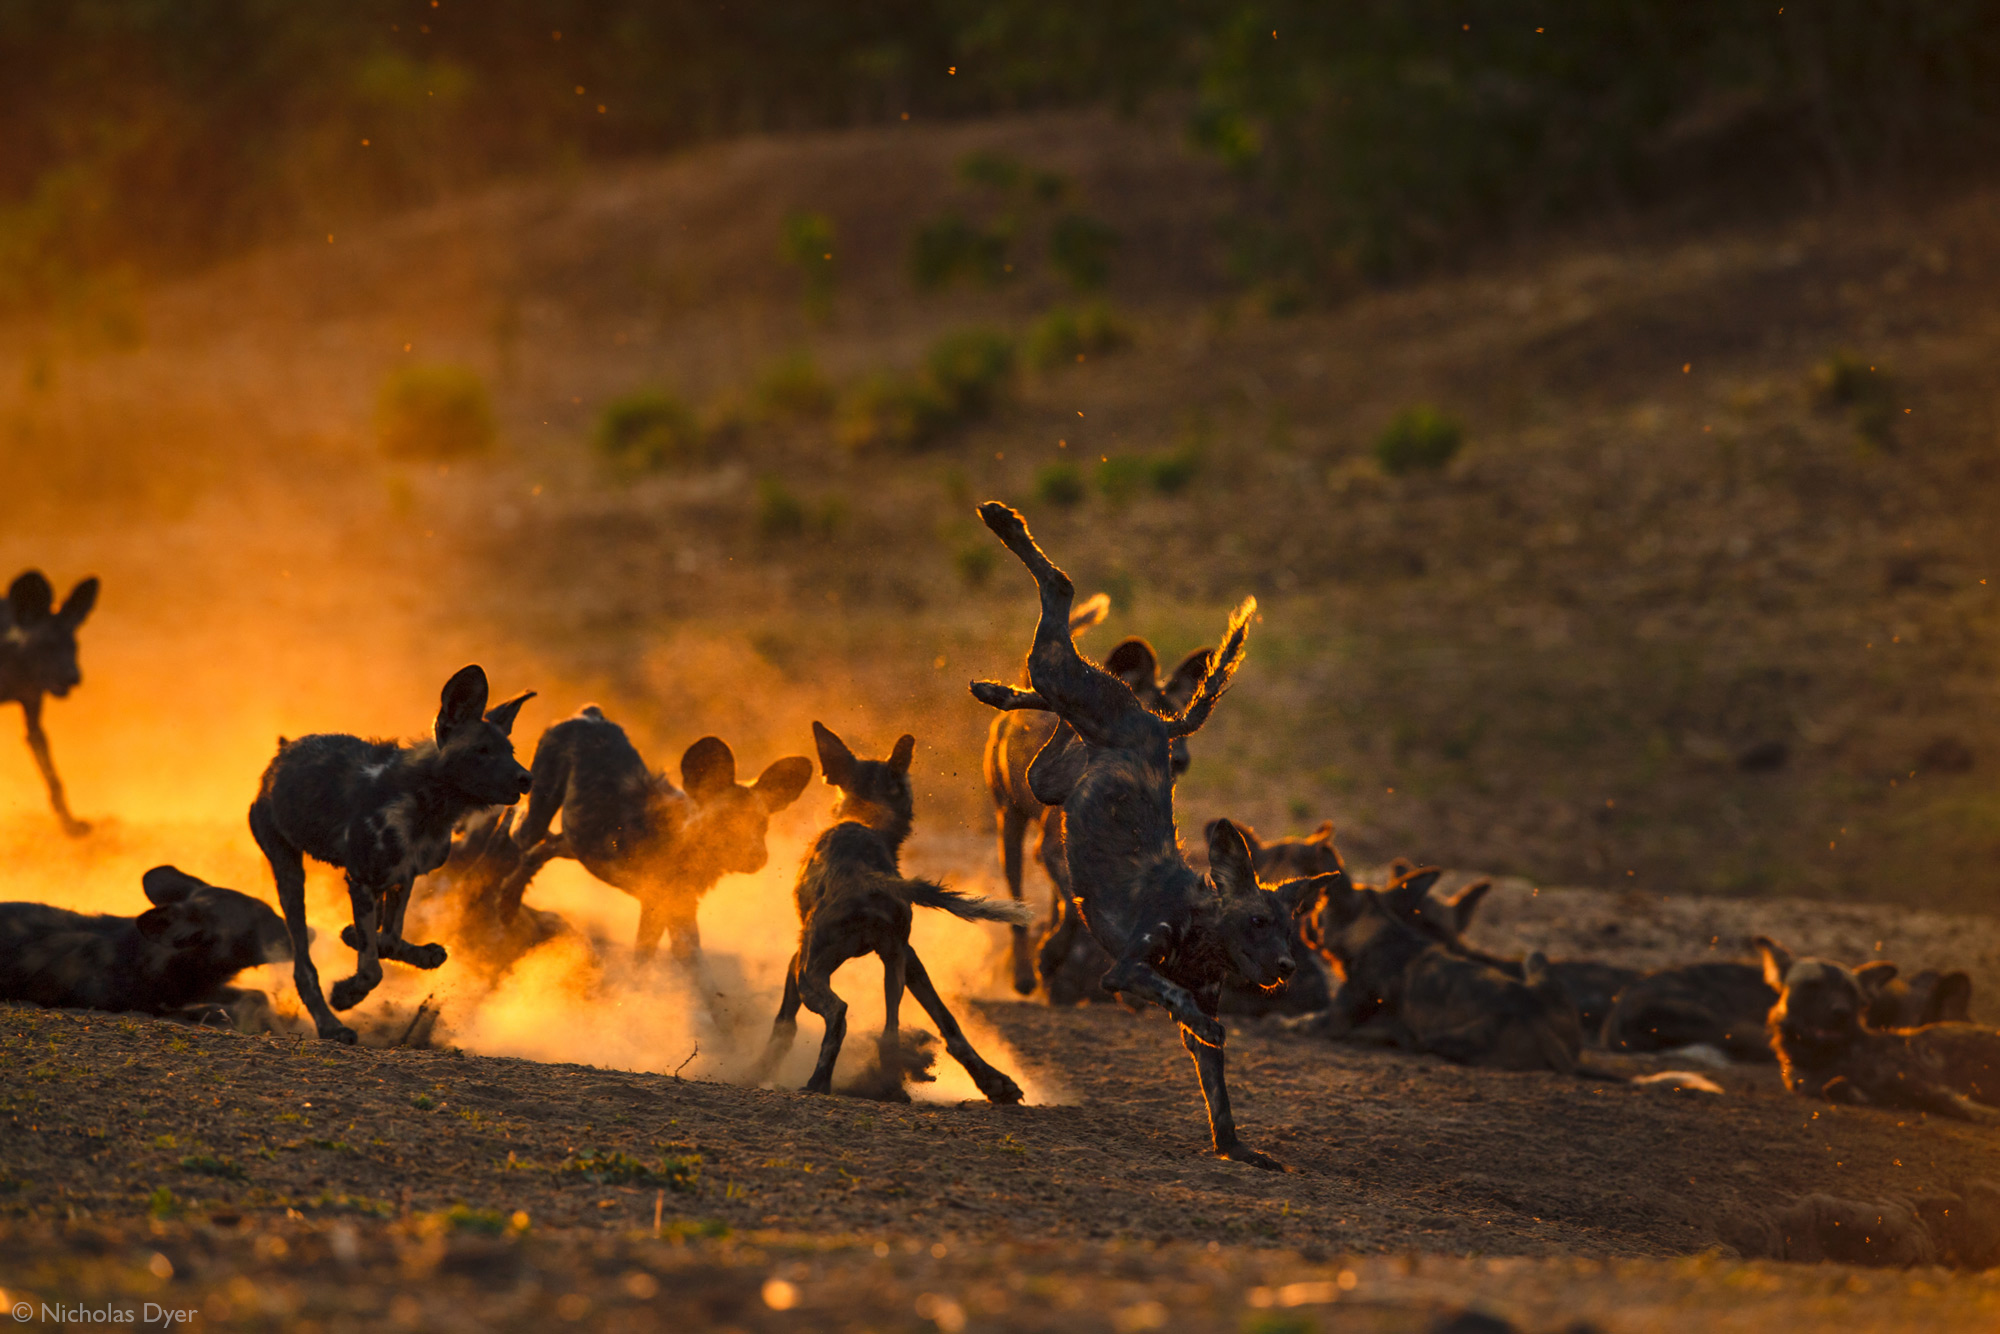 Painted wolves, African wild dogs, playing in the dust at sunset in Mana Pools National Park, Zimbabwe